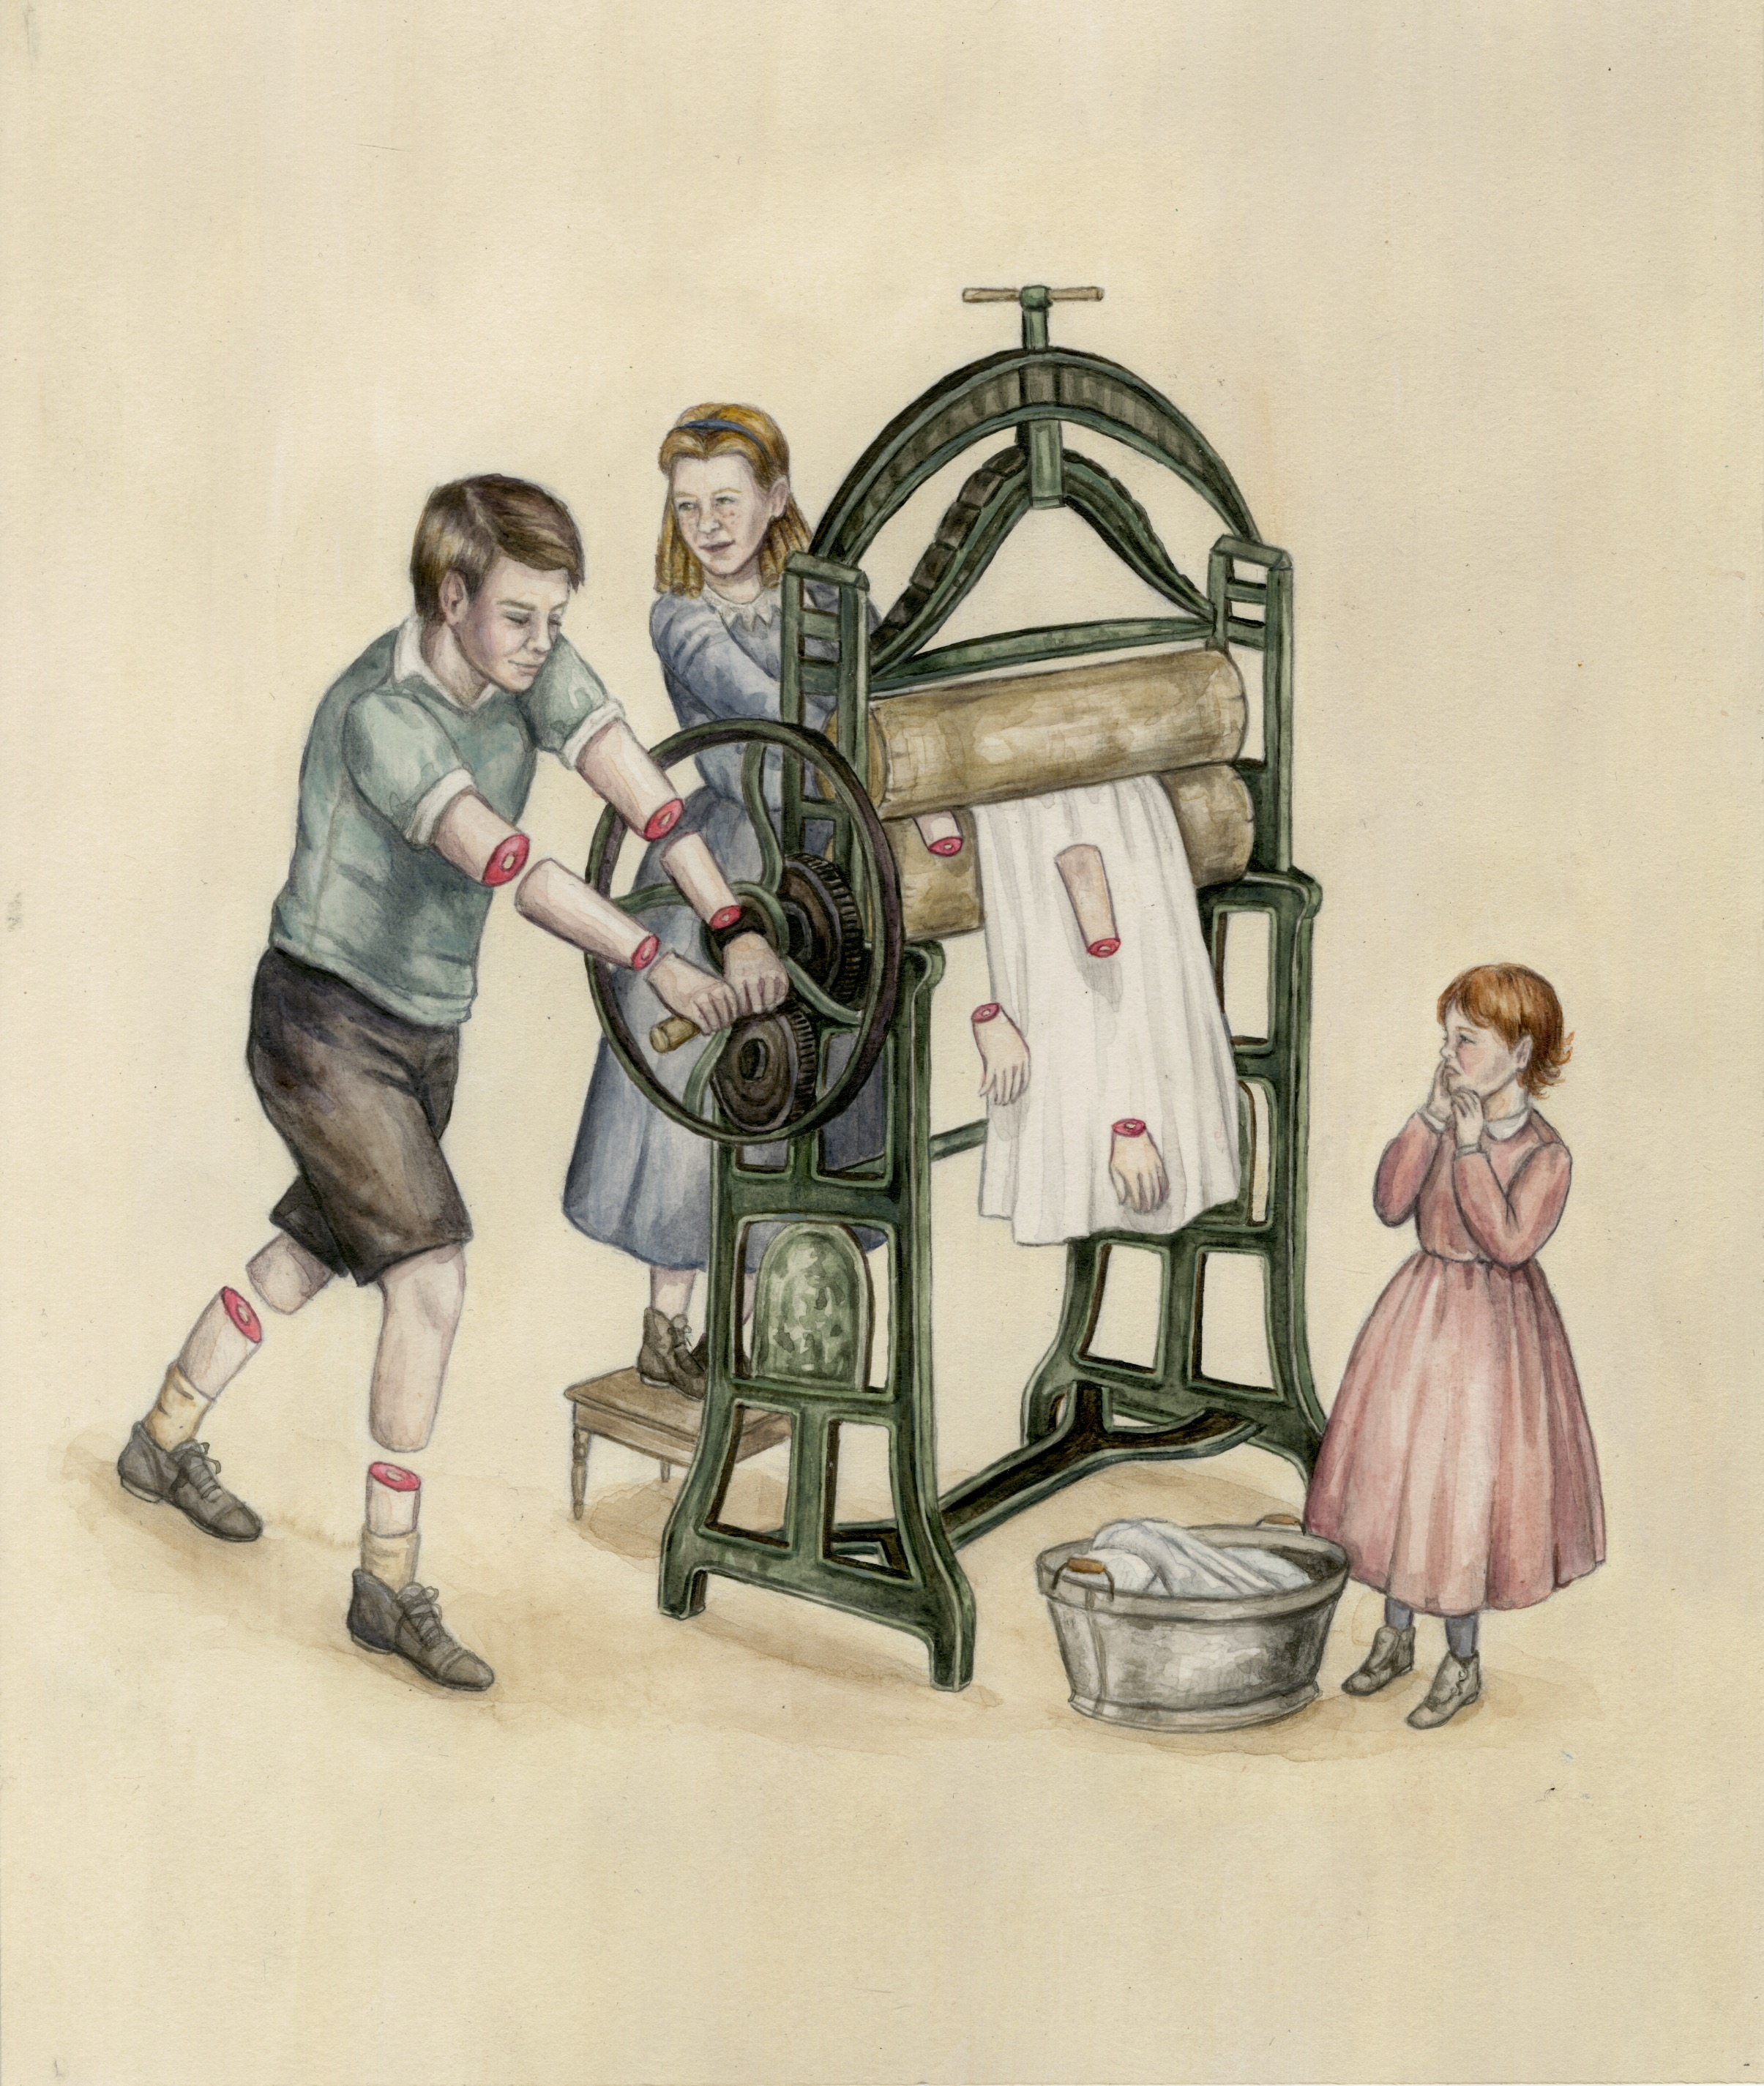 THE MANGLE    An invention called the Mangle was used to squish the water out of fabrics after they had been washed. The machine had exposed gears and curious children would accidentally get themselves jammed and caught up in the machine causing server damage or death.